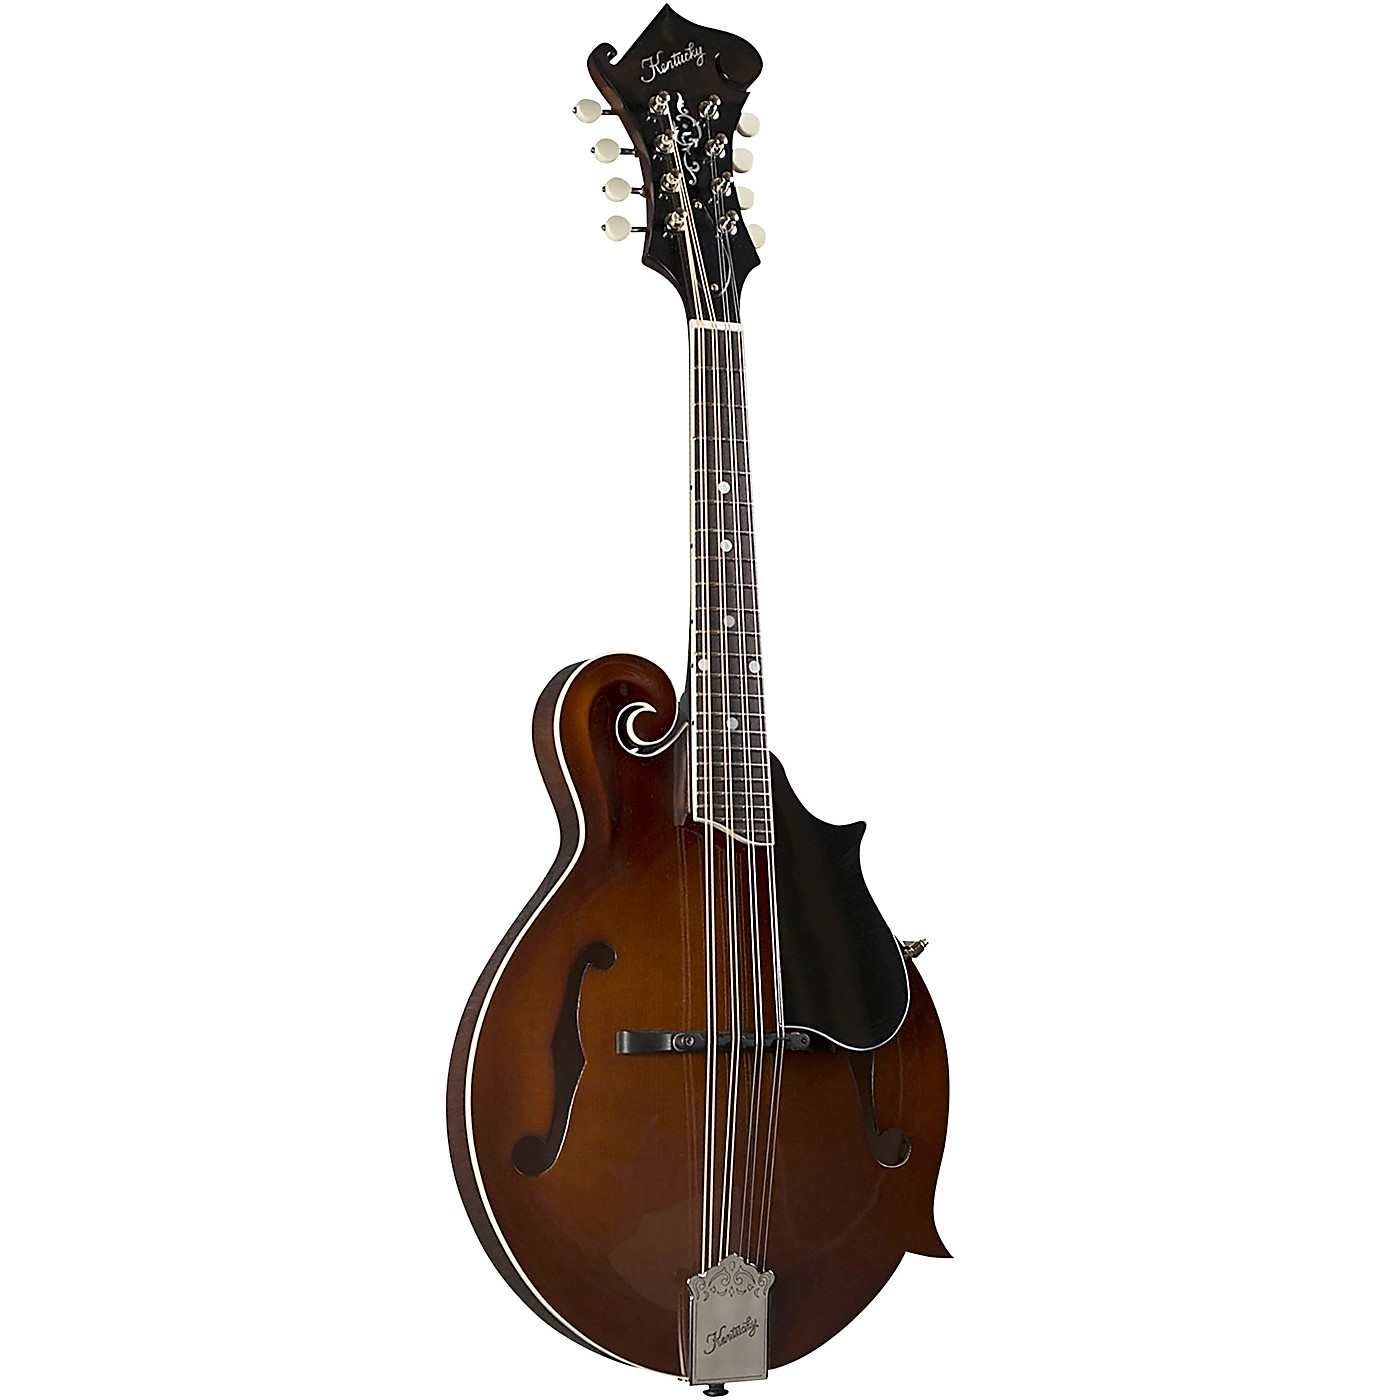 Kentucky KM-756 Deluxe F-model Mandolin thumbnail